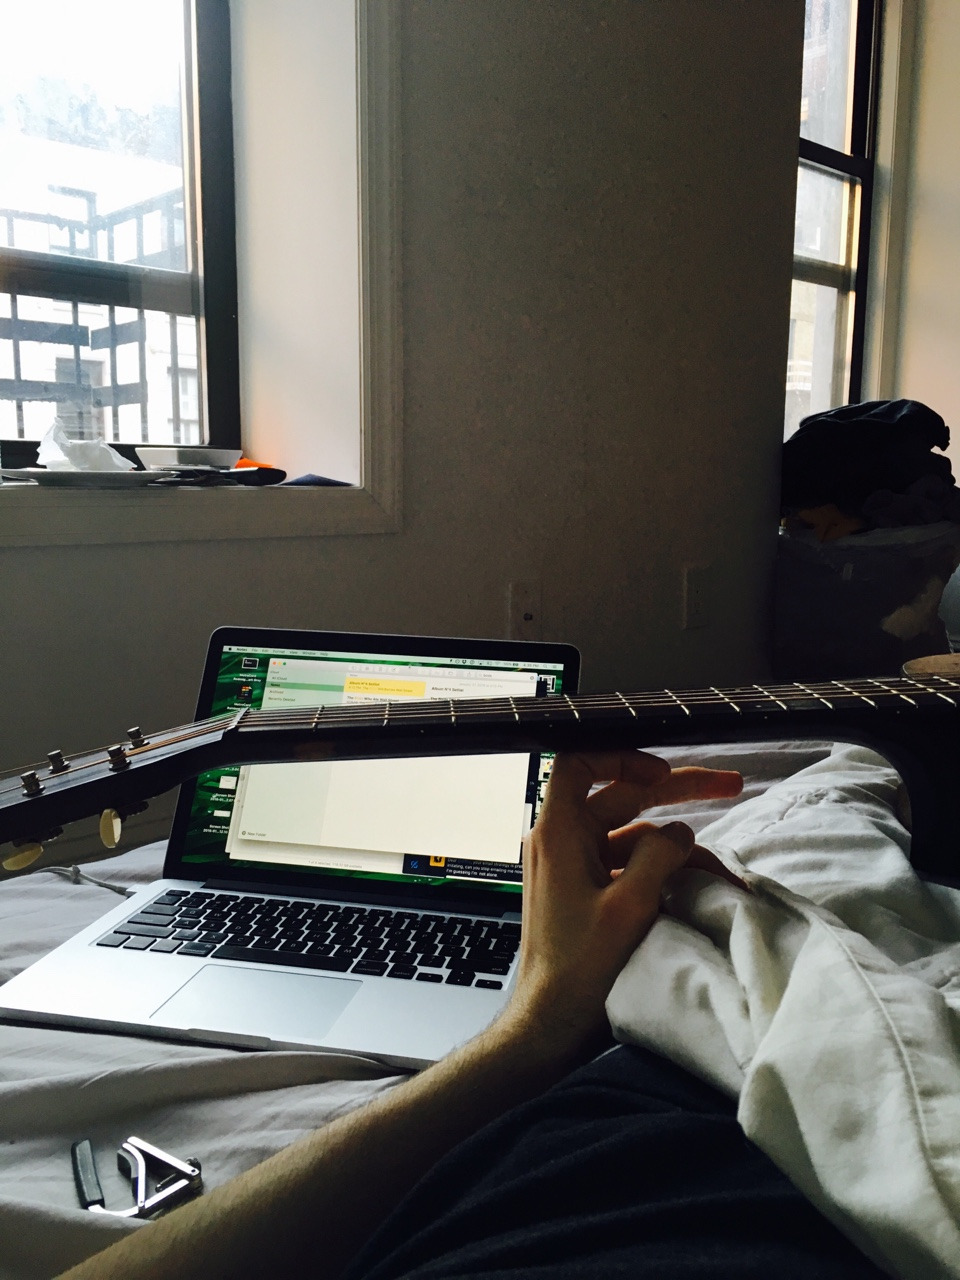 Still injured, but writing Song One lyrics in bed.